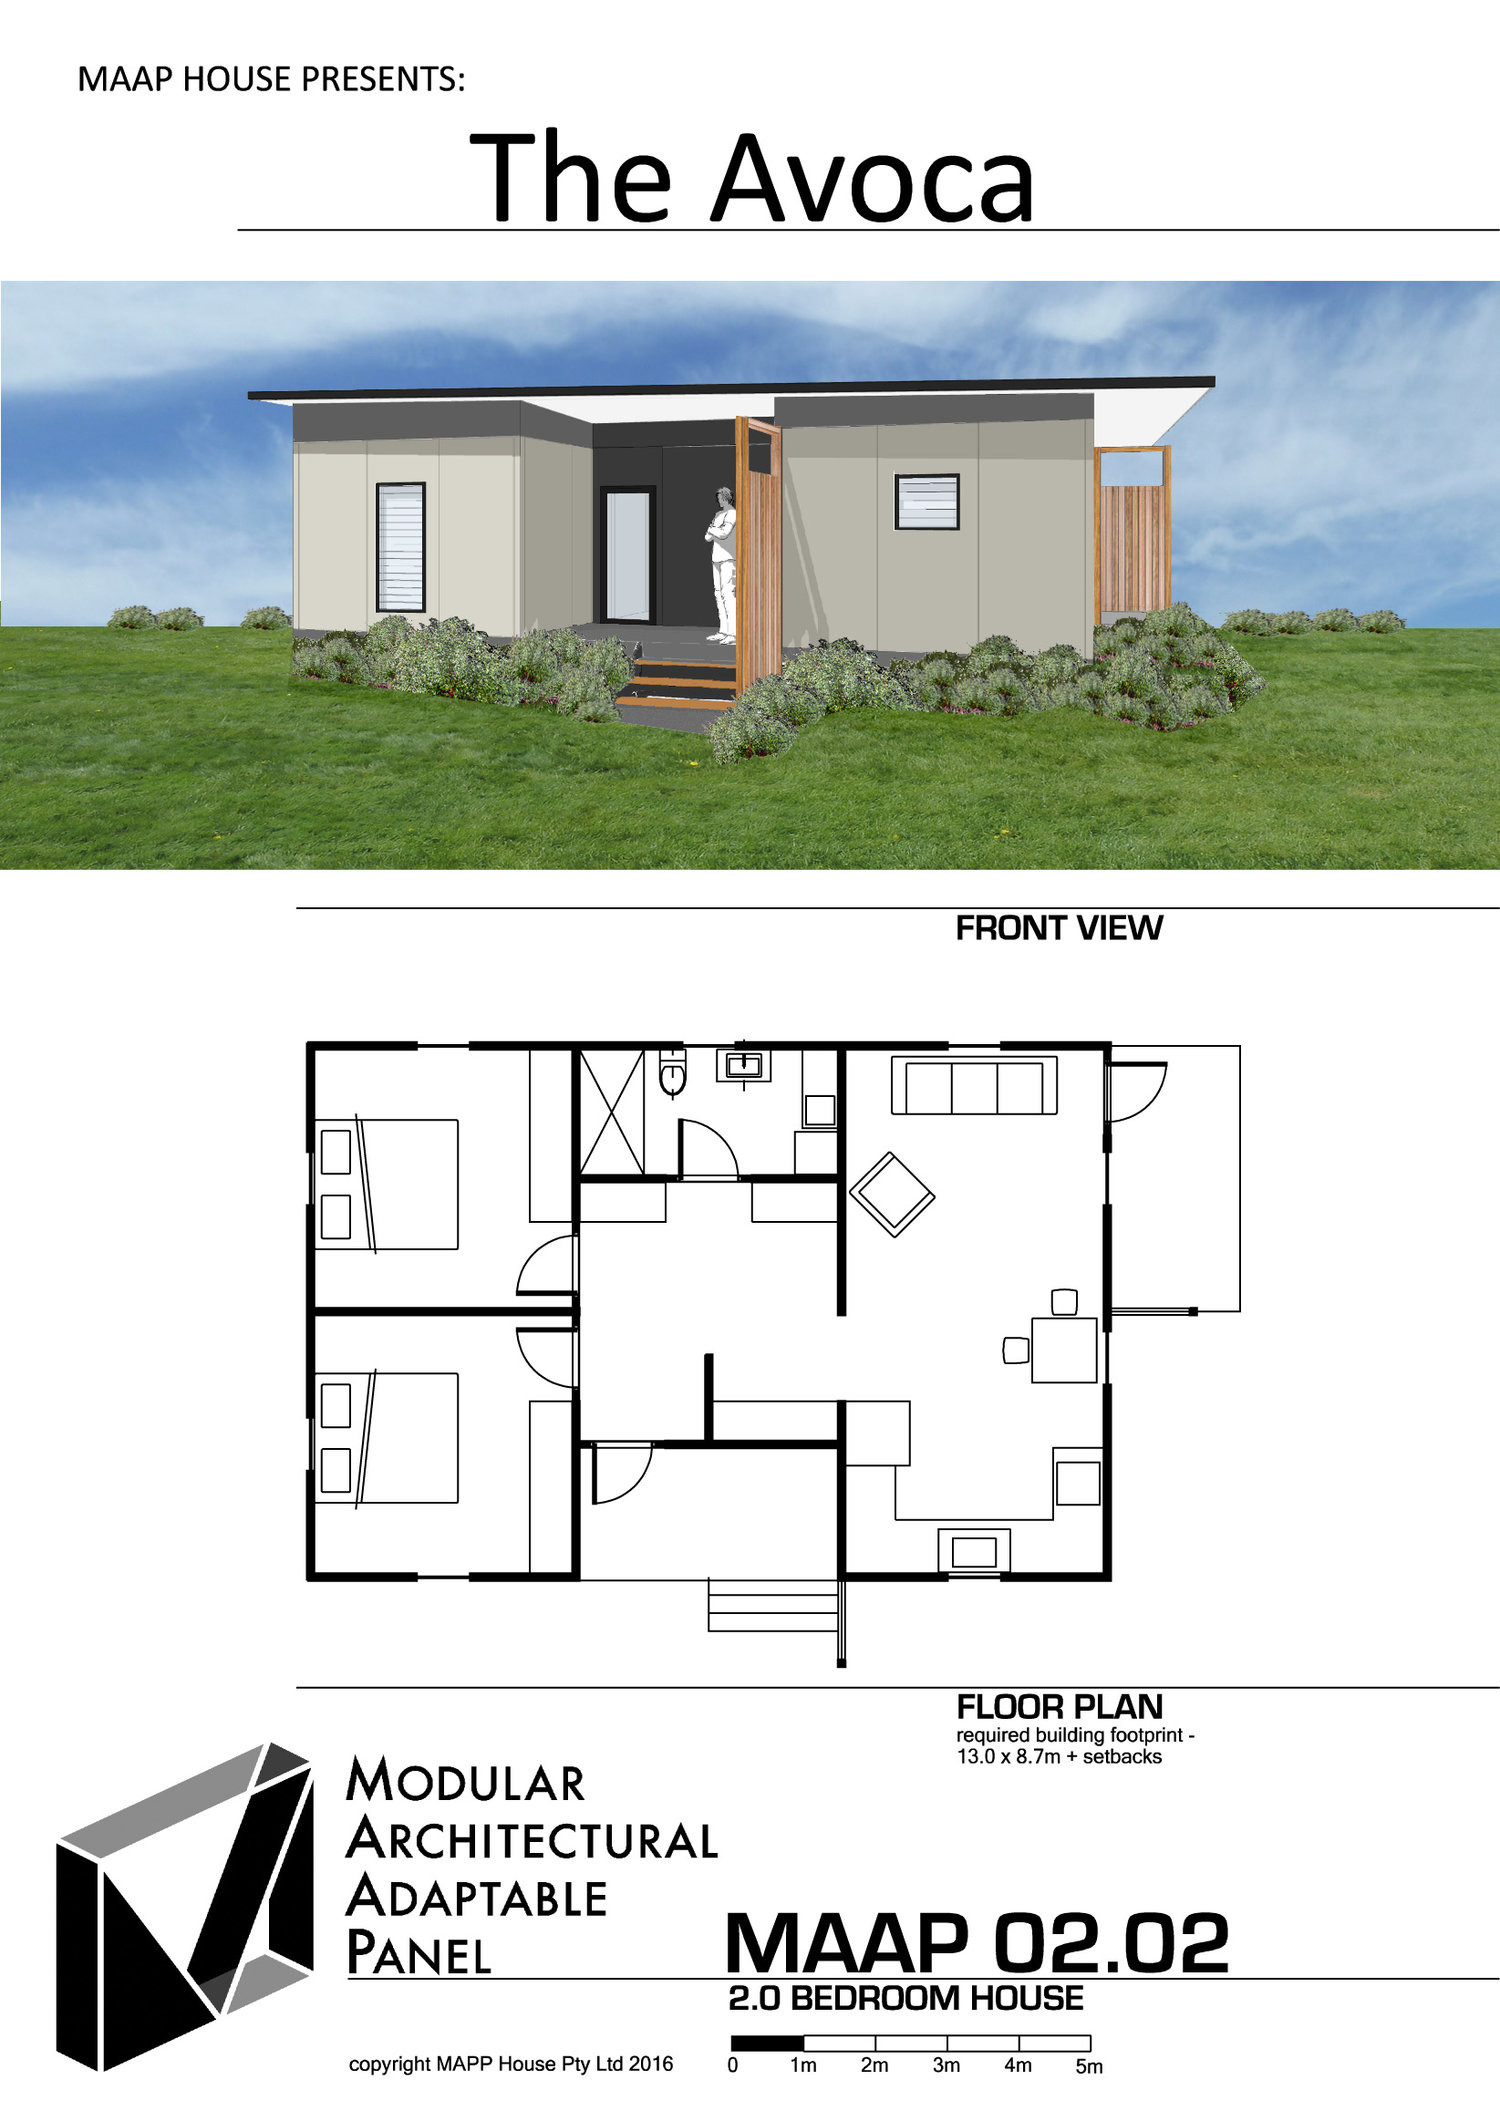 Modular House Plans with Prices Luxury Modular House Designs Plans and Prices — Maap House